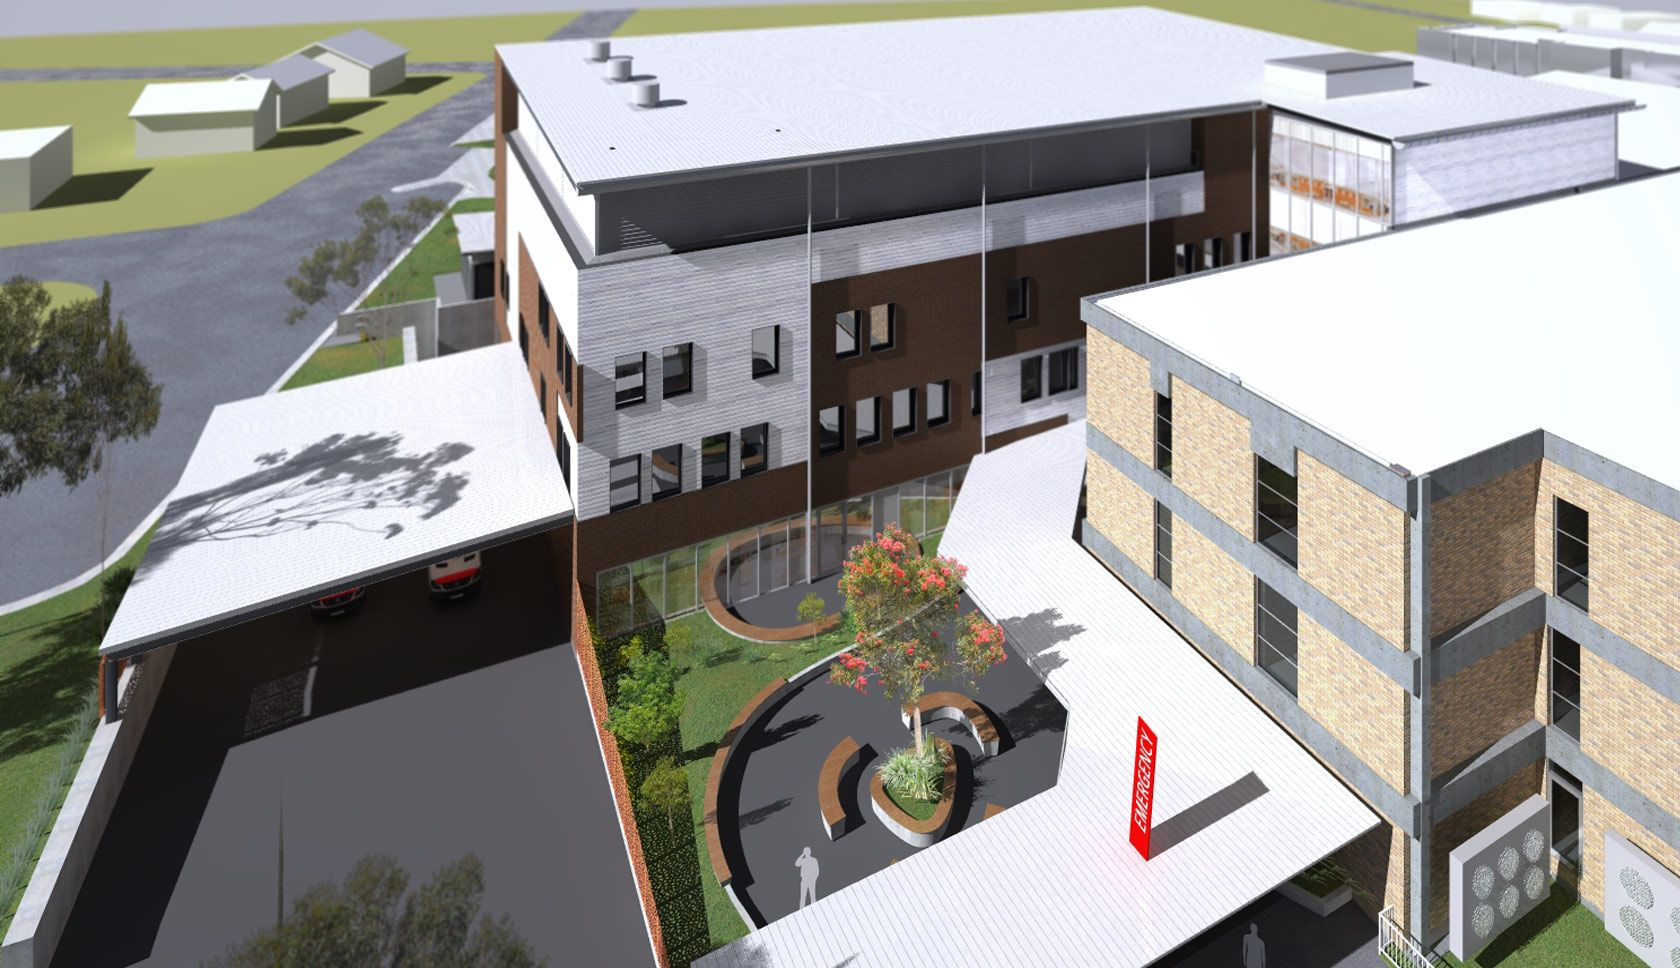 Armidale hospital aerial drawing of the building redevelopment